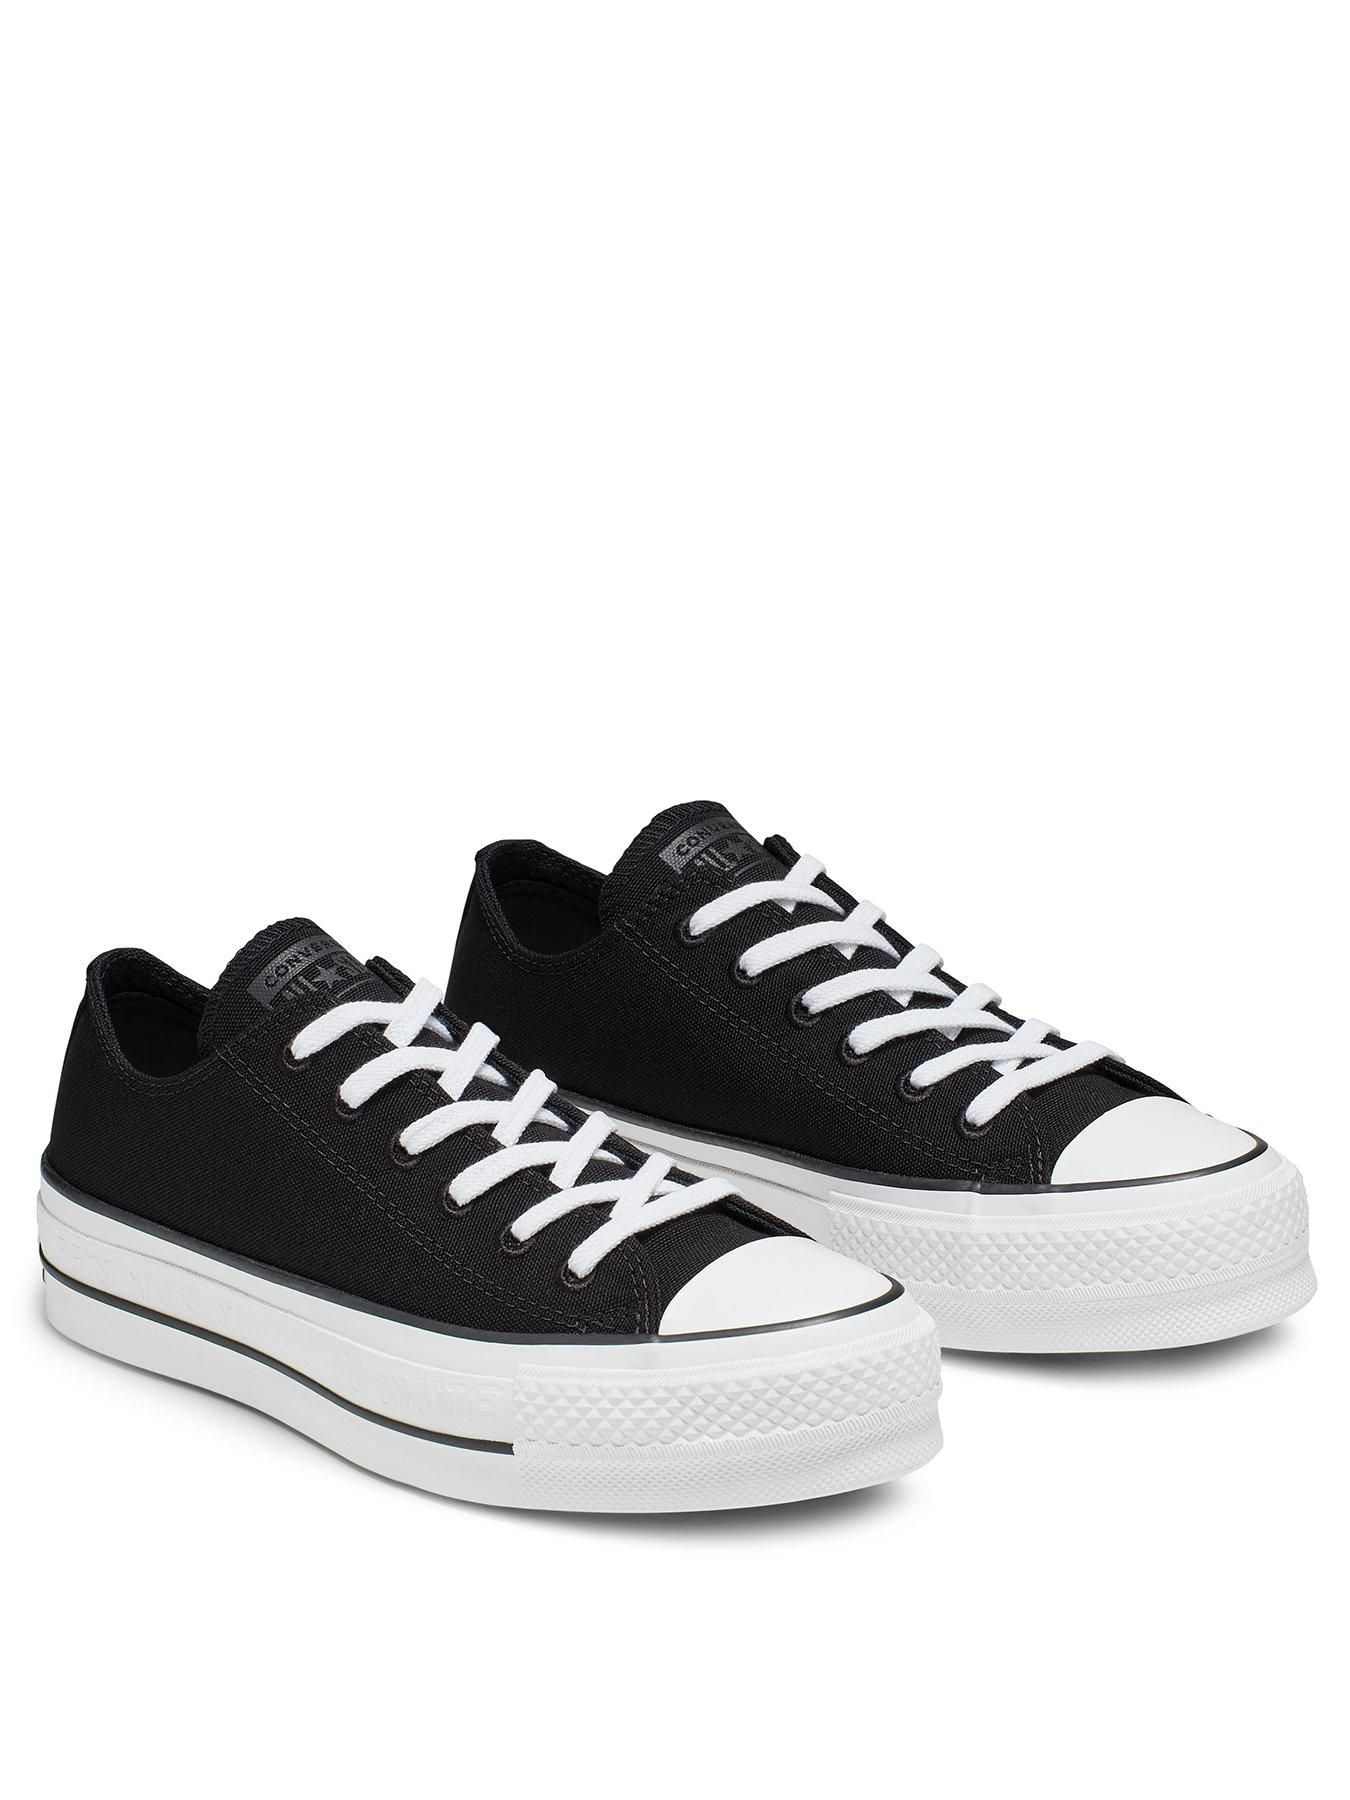 Converse Chuck Taylor All Star Platform Lift Renew Canvas Ox